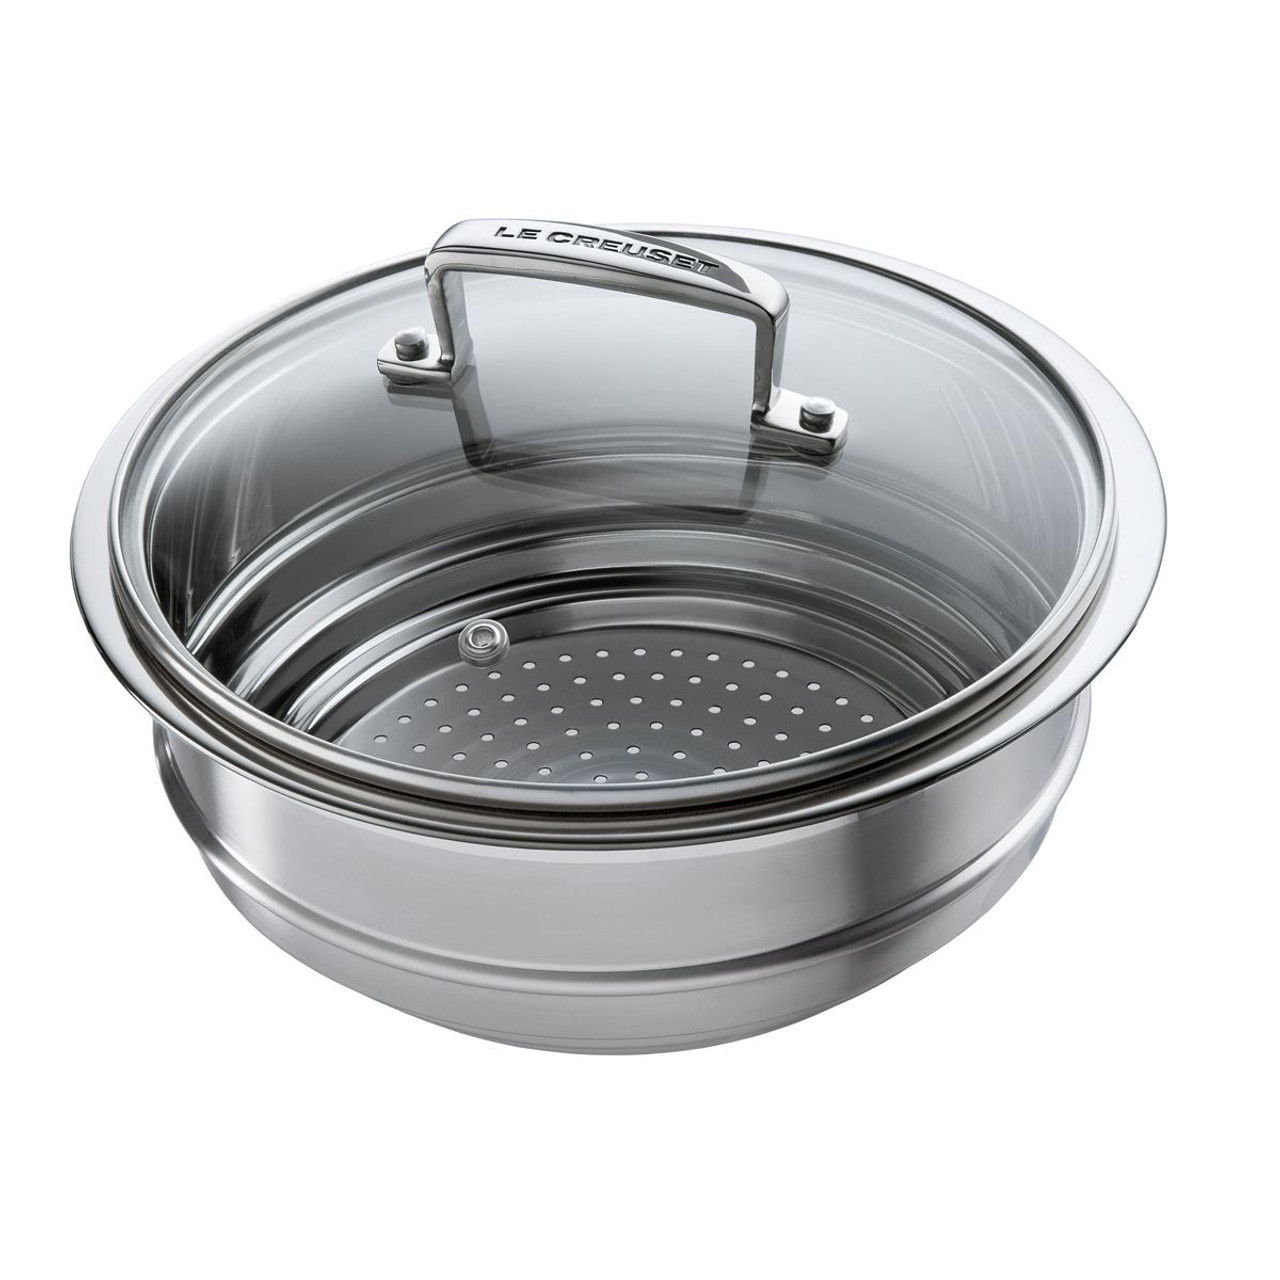 Le Creuset Stainless Steel Multi-Steamer With Glass Lid